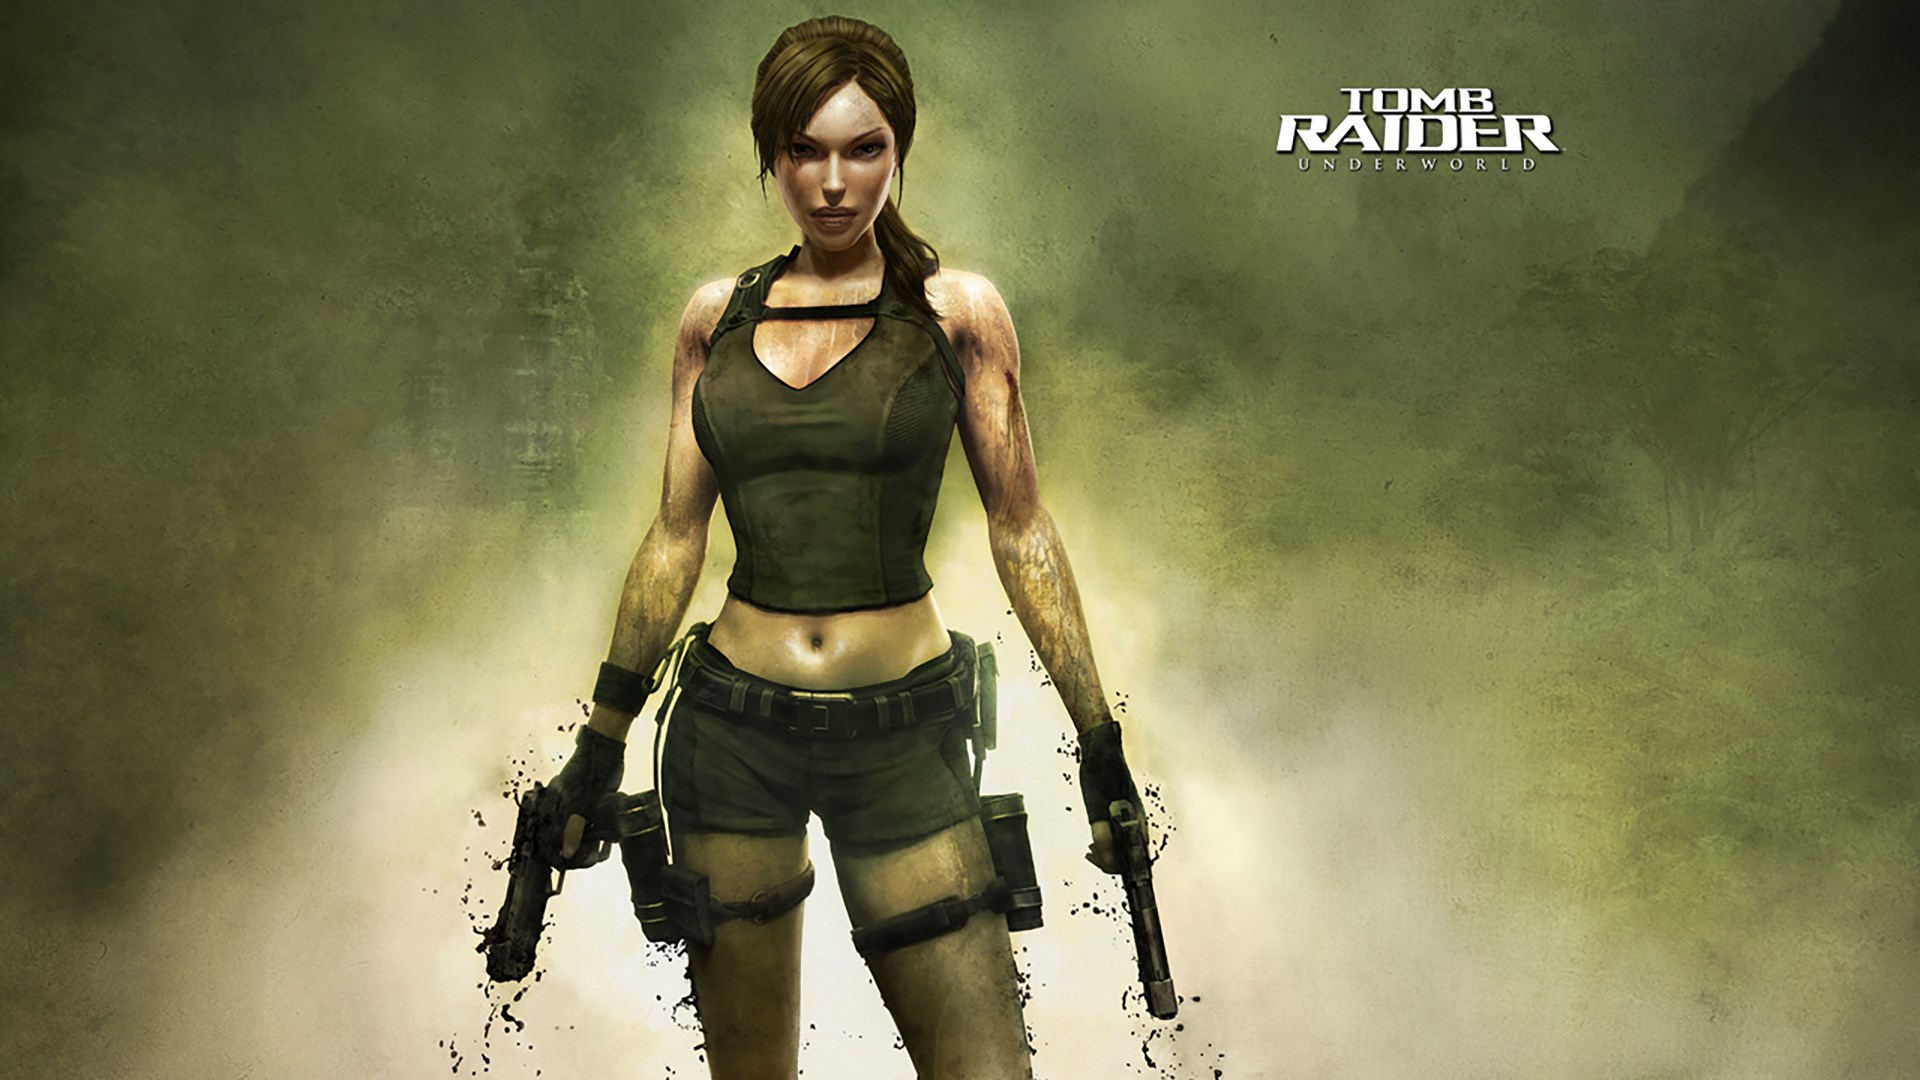 tomb raider legend outfits